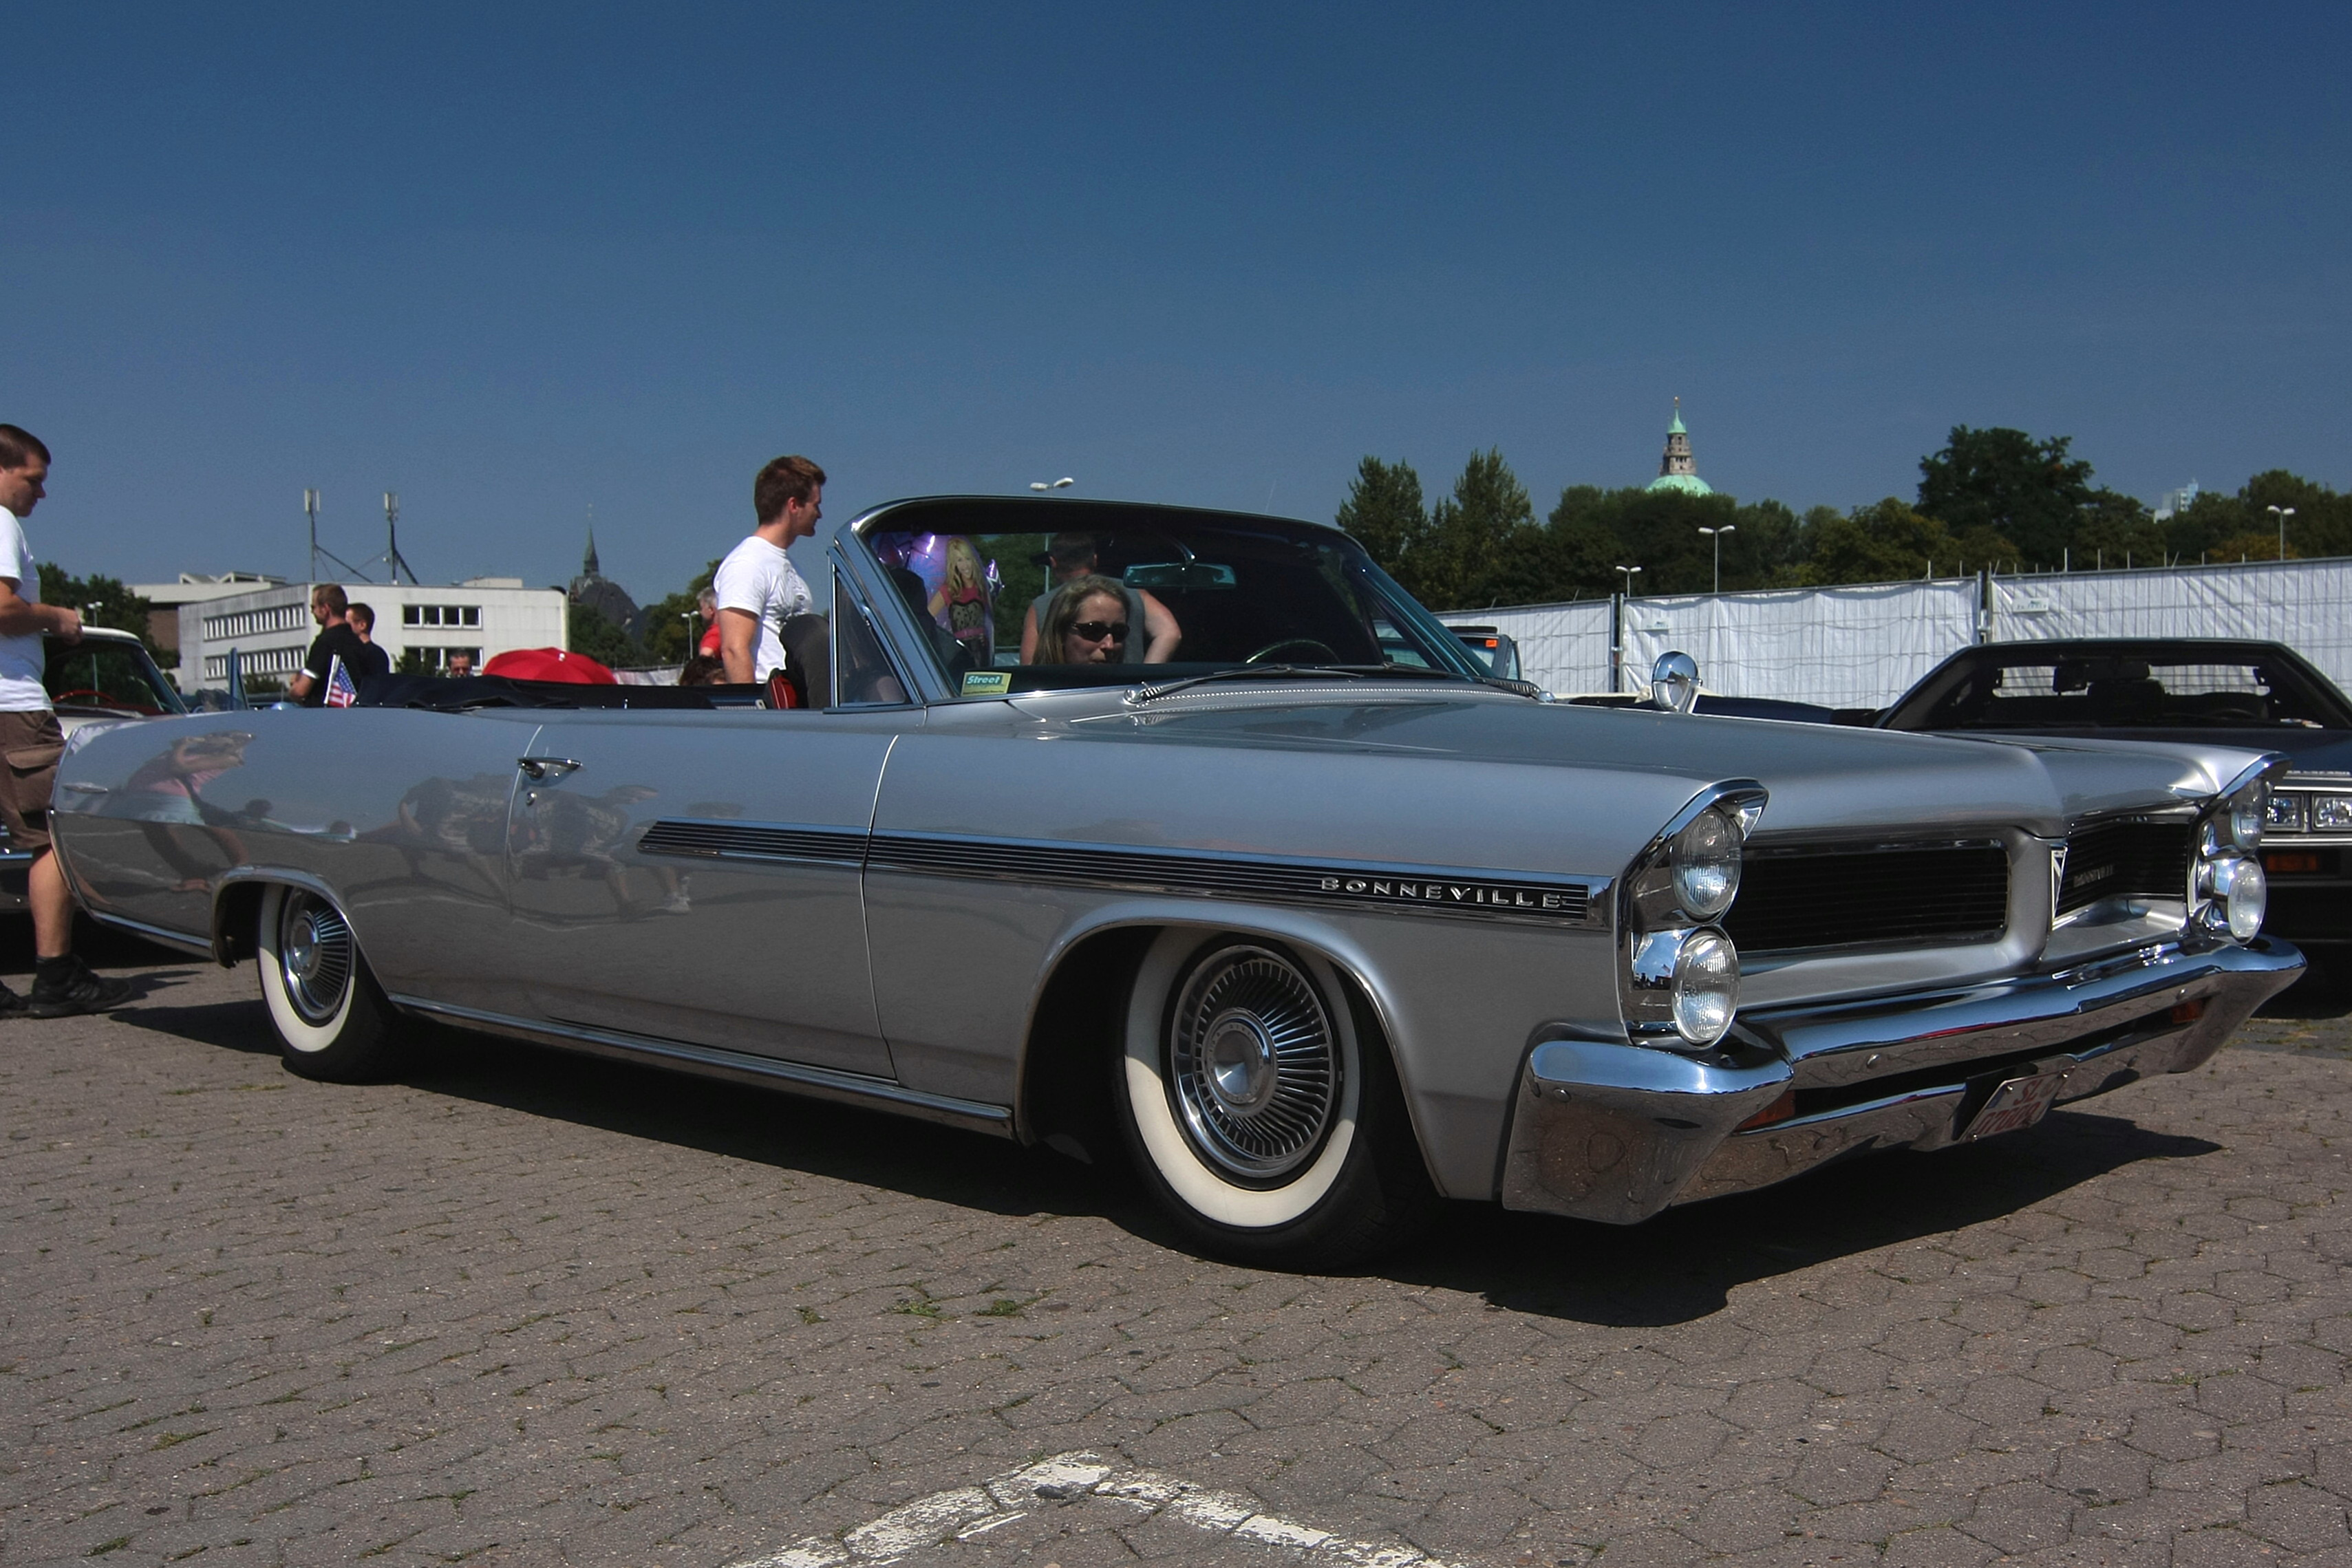 1963 Pontiac Bonneville Convertible | Flickr - Photo Sharing!